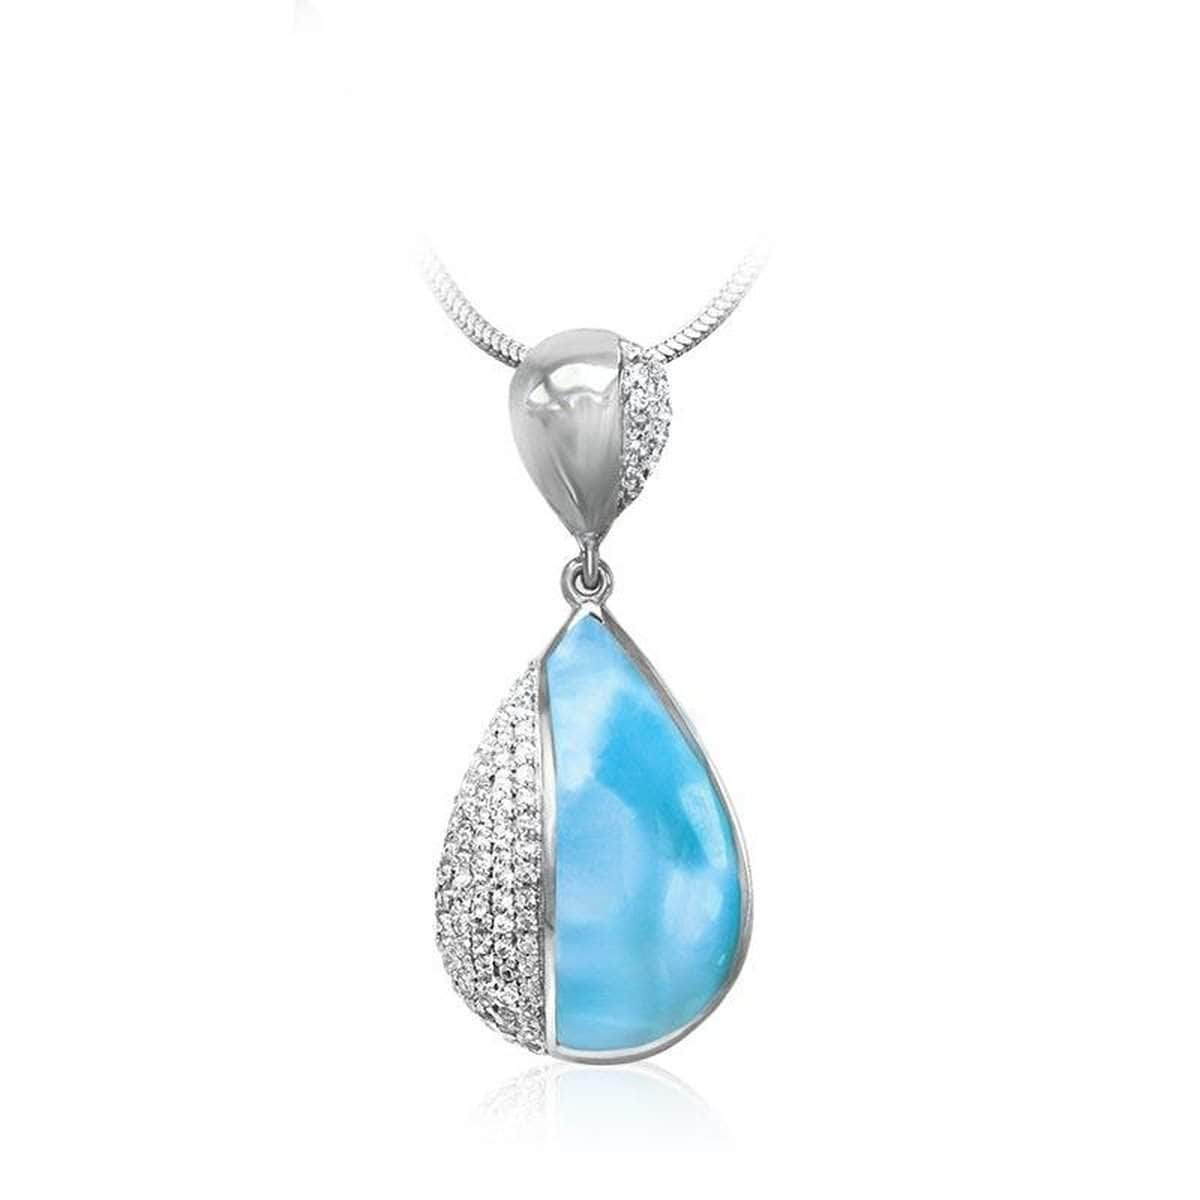 Divine White Sapphire Necklace - Ndivi00-00-Marahlago Larimar-Renee Taylor Gallery